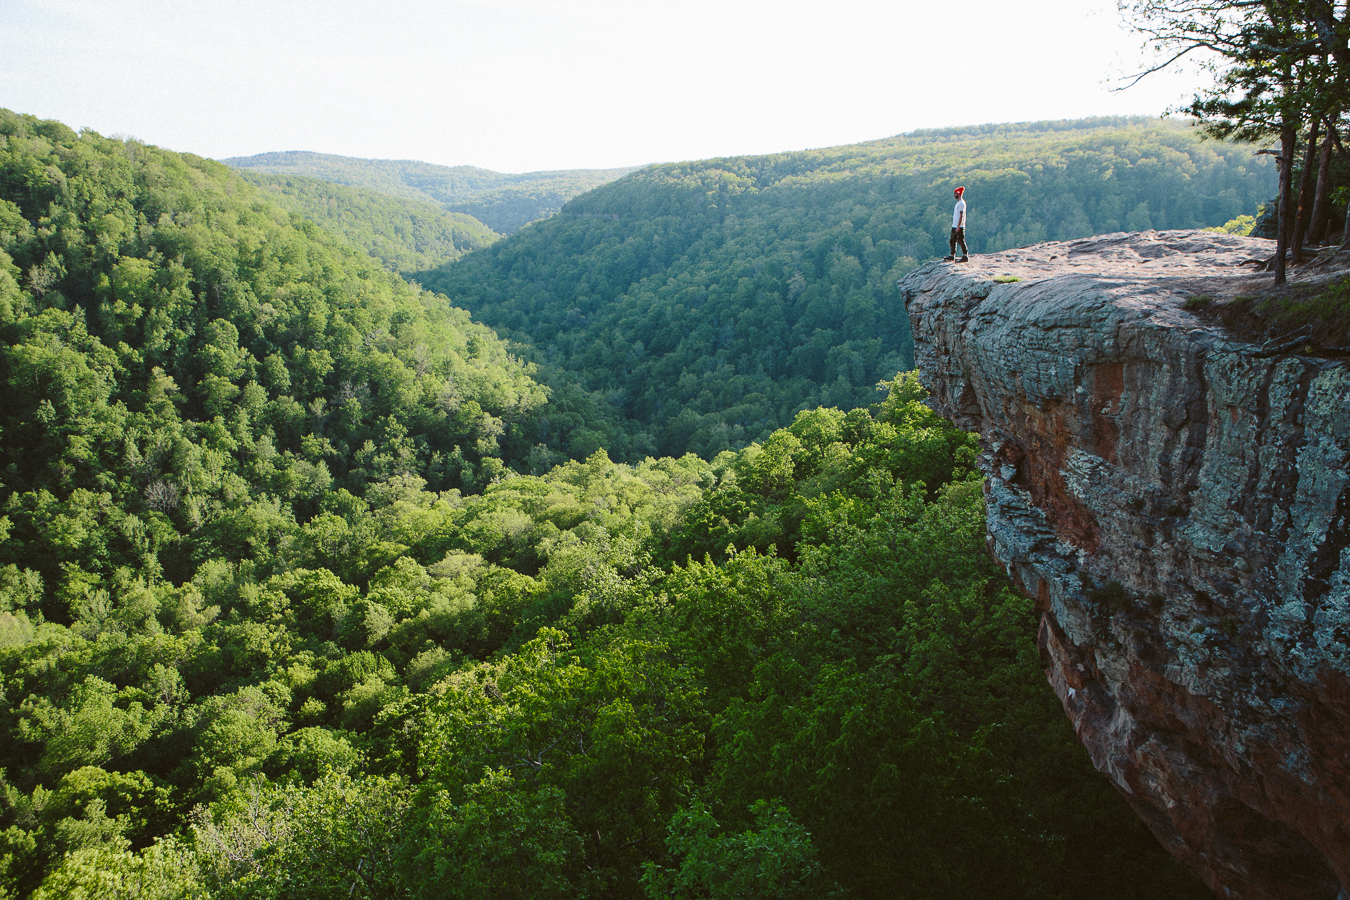 Hiking out to HawksbillCrag was great, perfect weather and this amazing view.